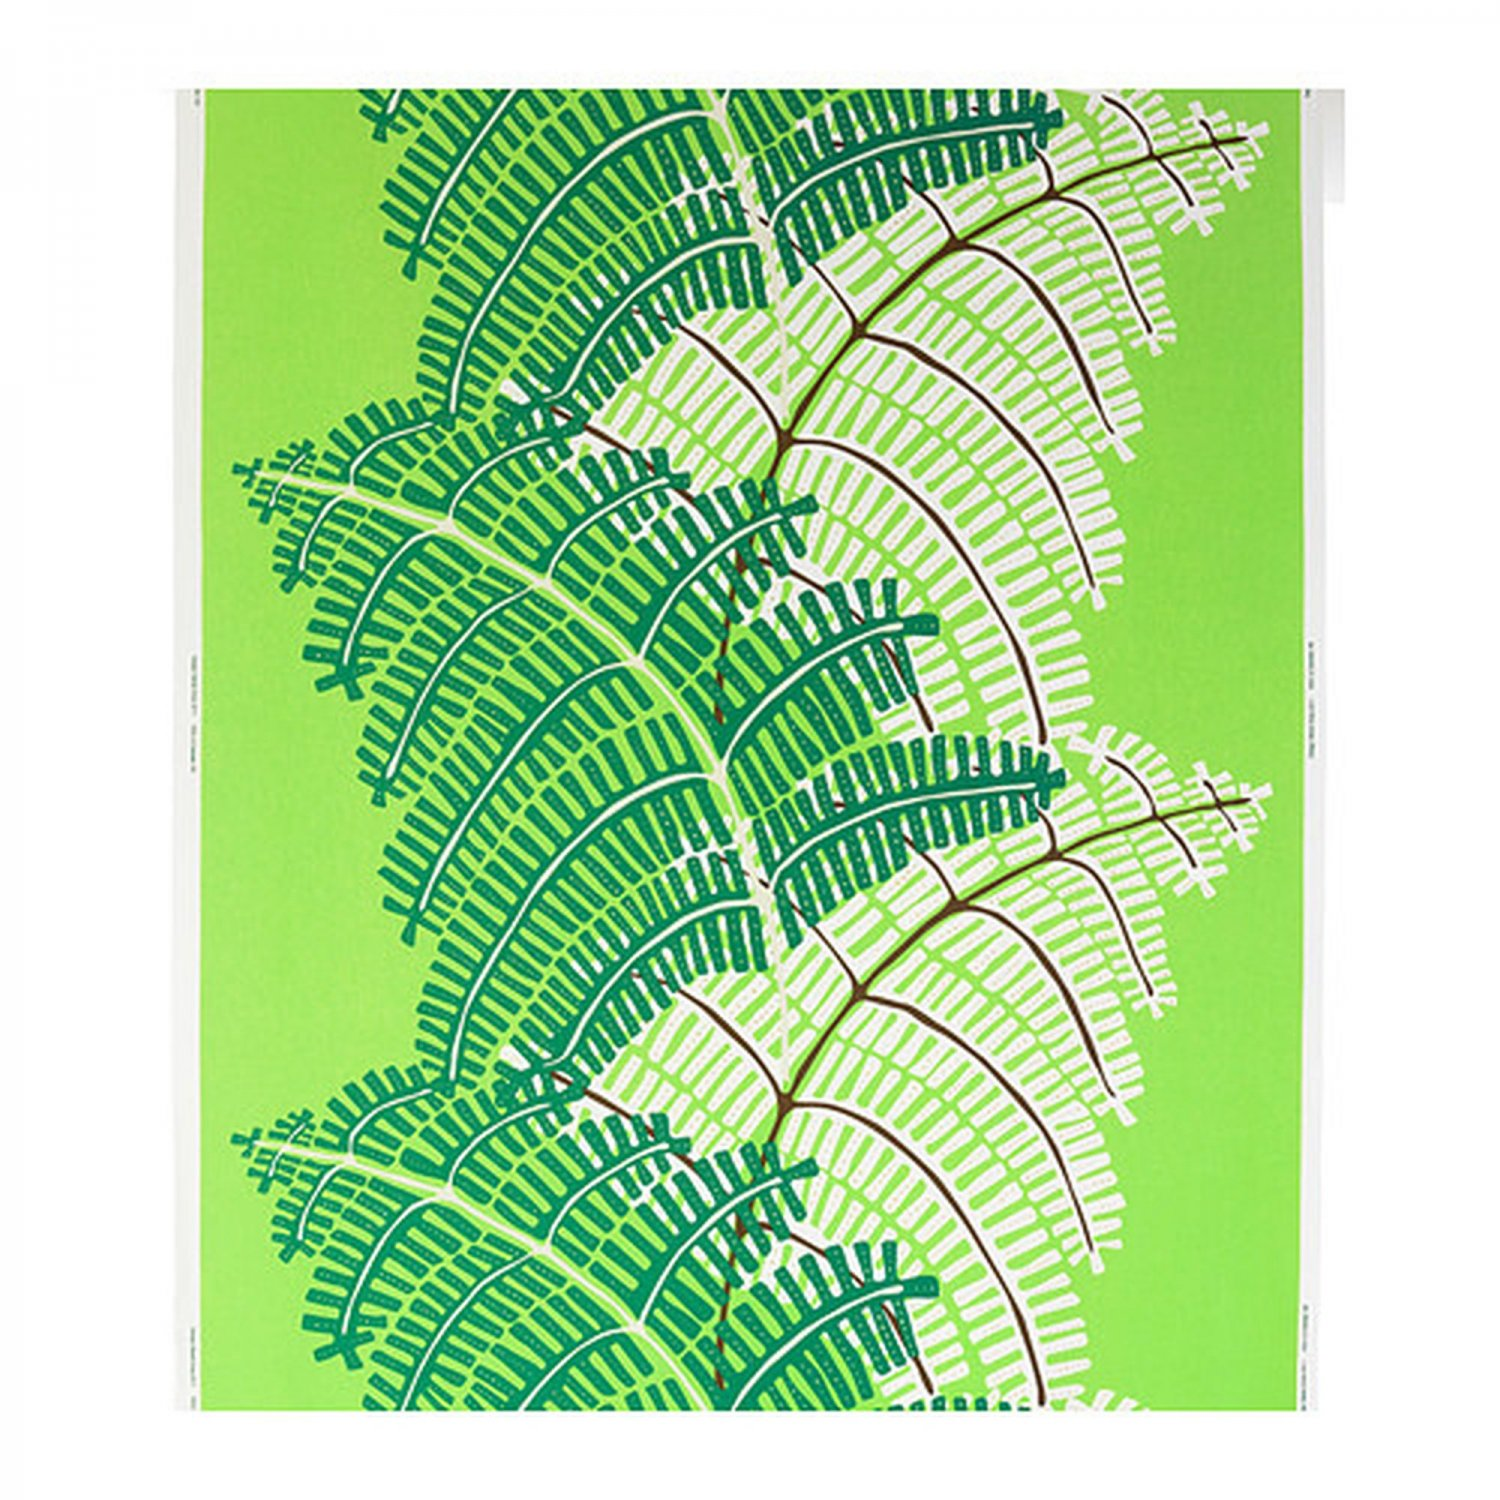 ikea stockholm fabric material 1 yd green white fern jungle print. Black Bedroom Furniture Sets. Home Design Ideas